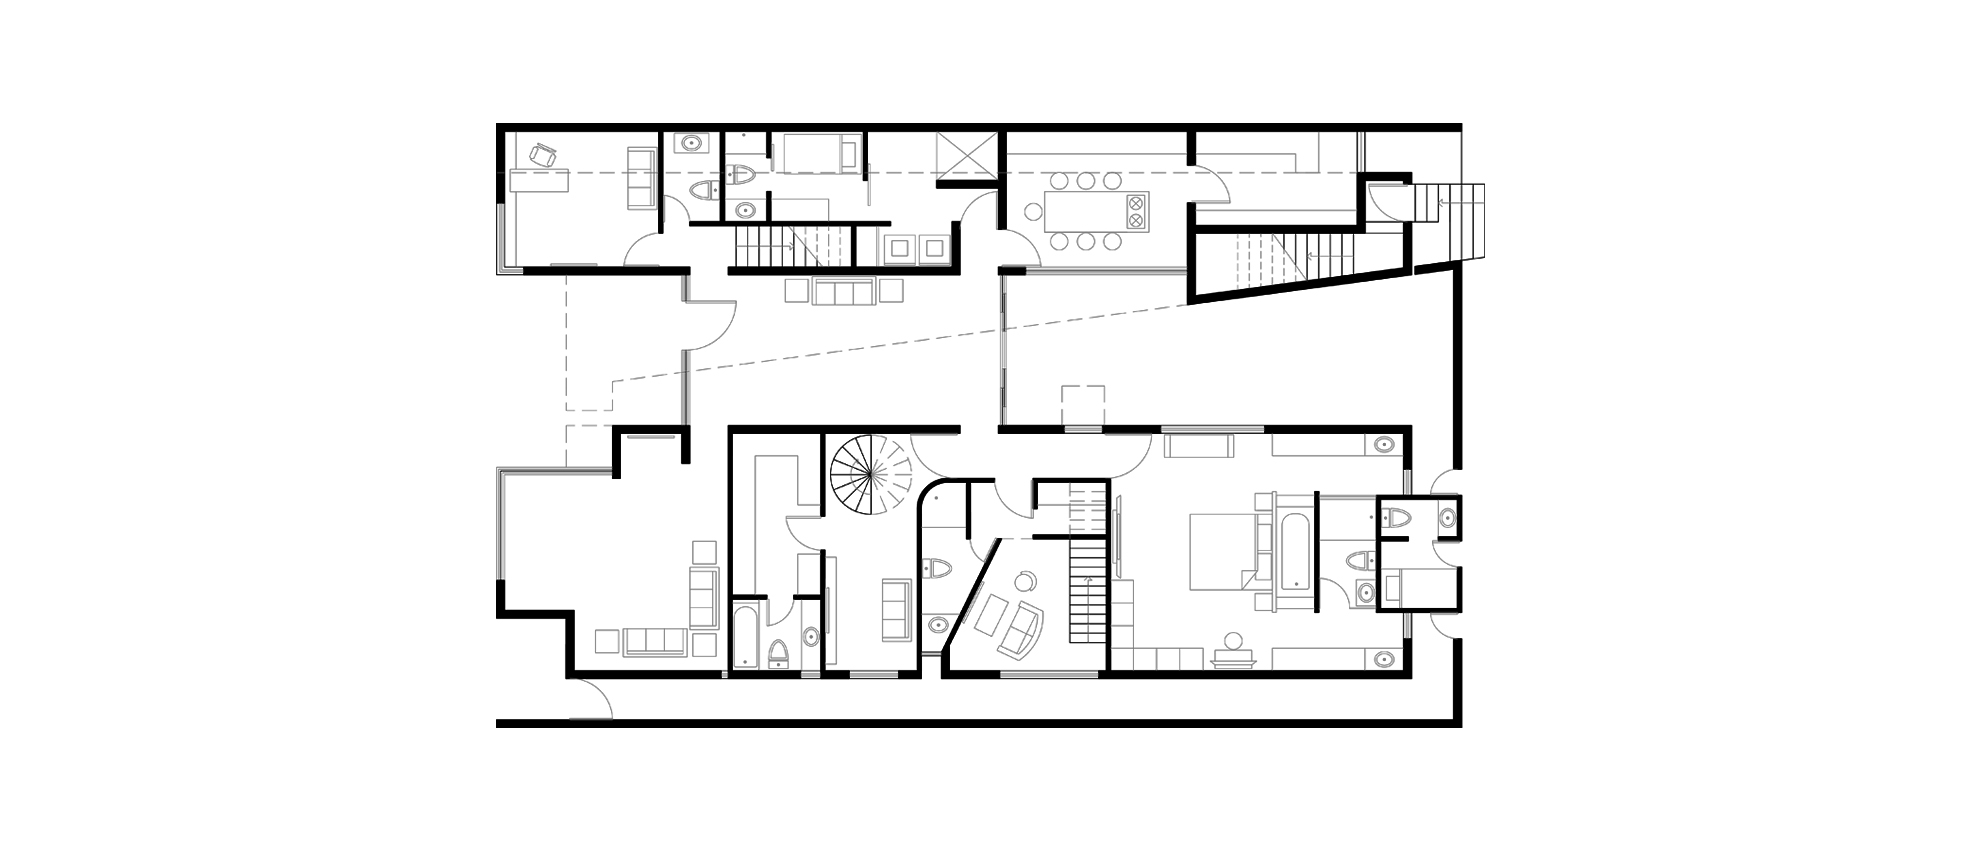 1Ground Floor Plan